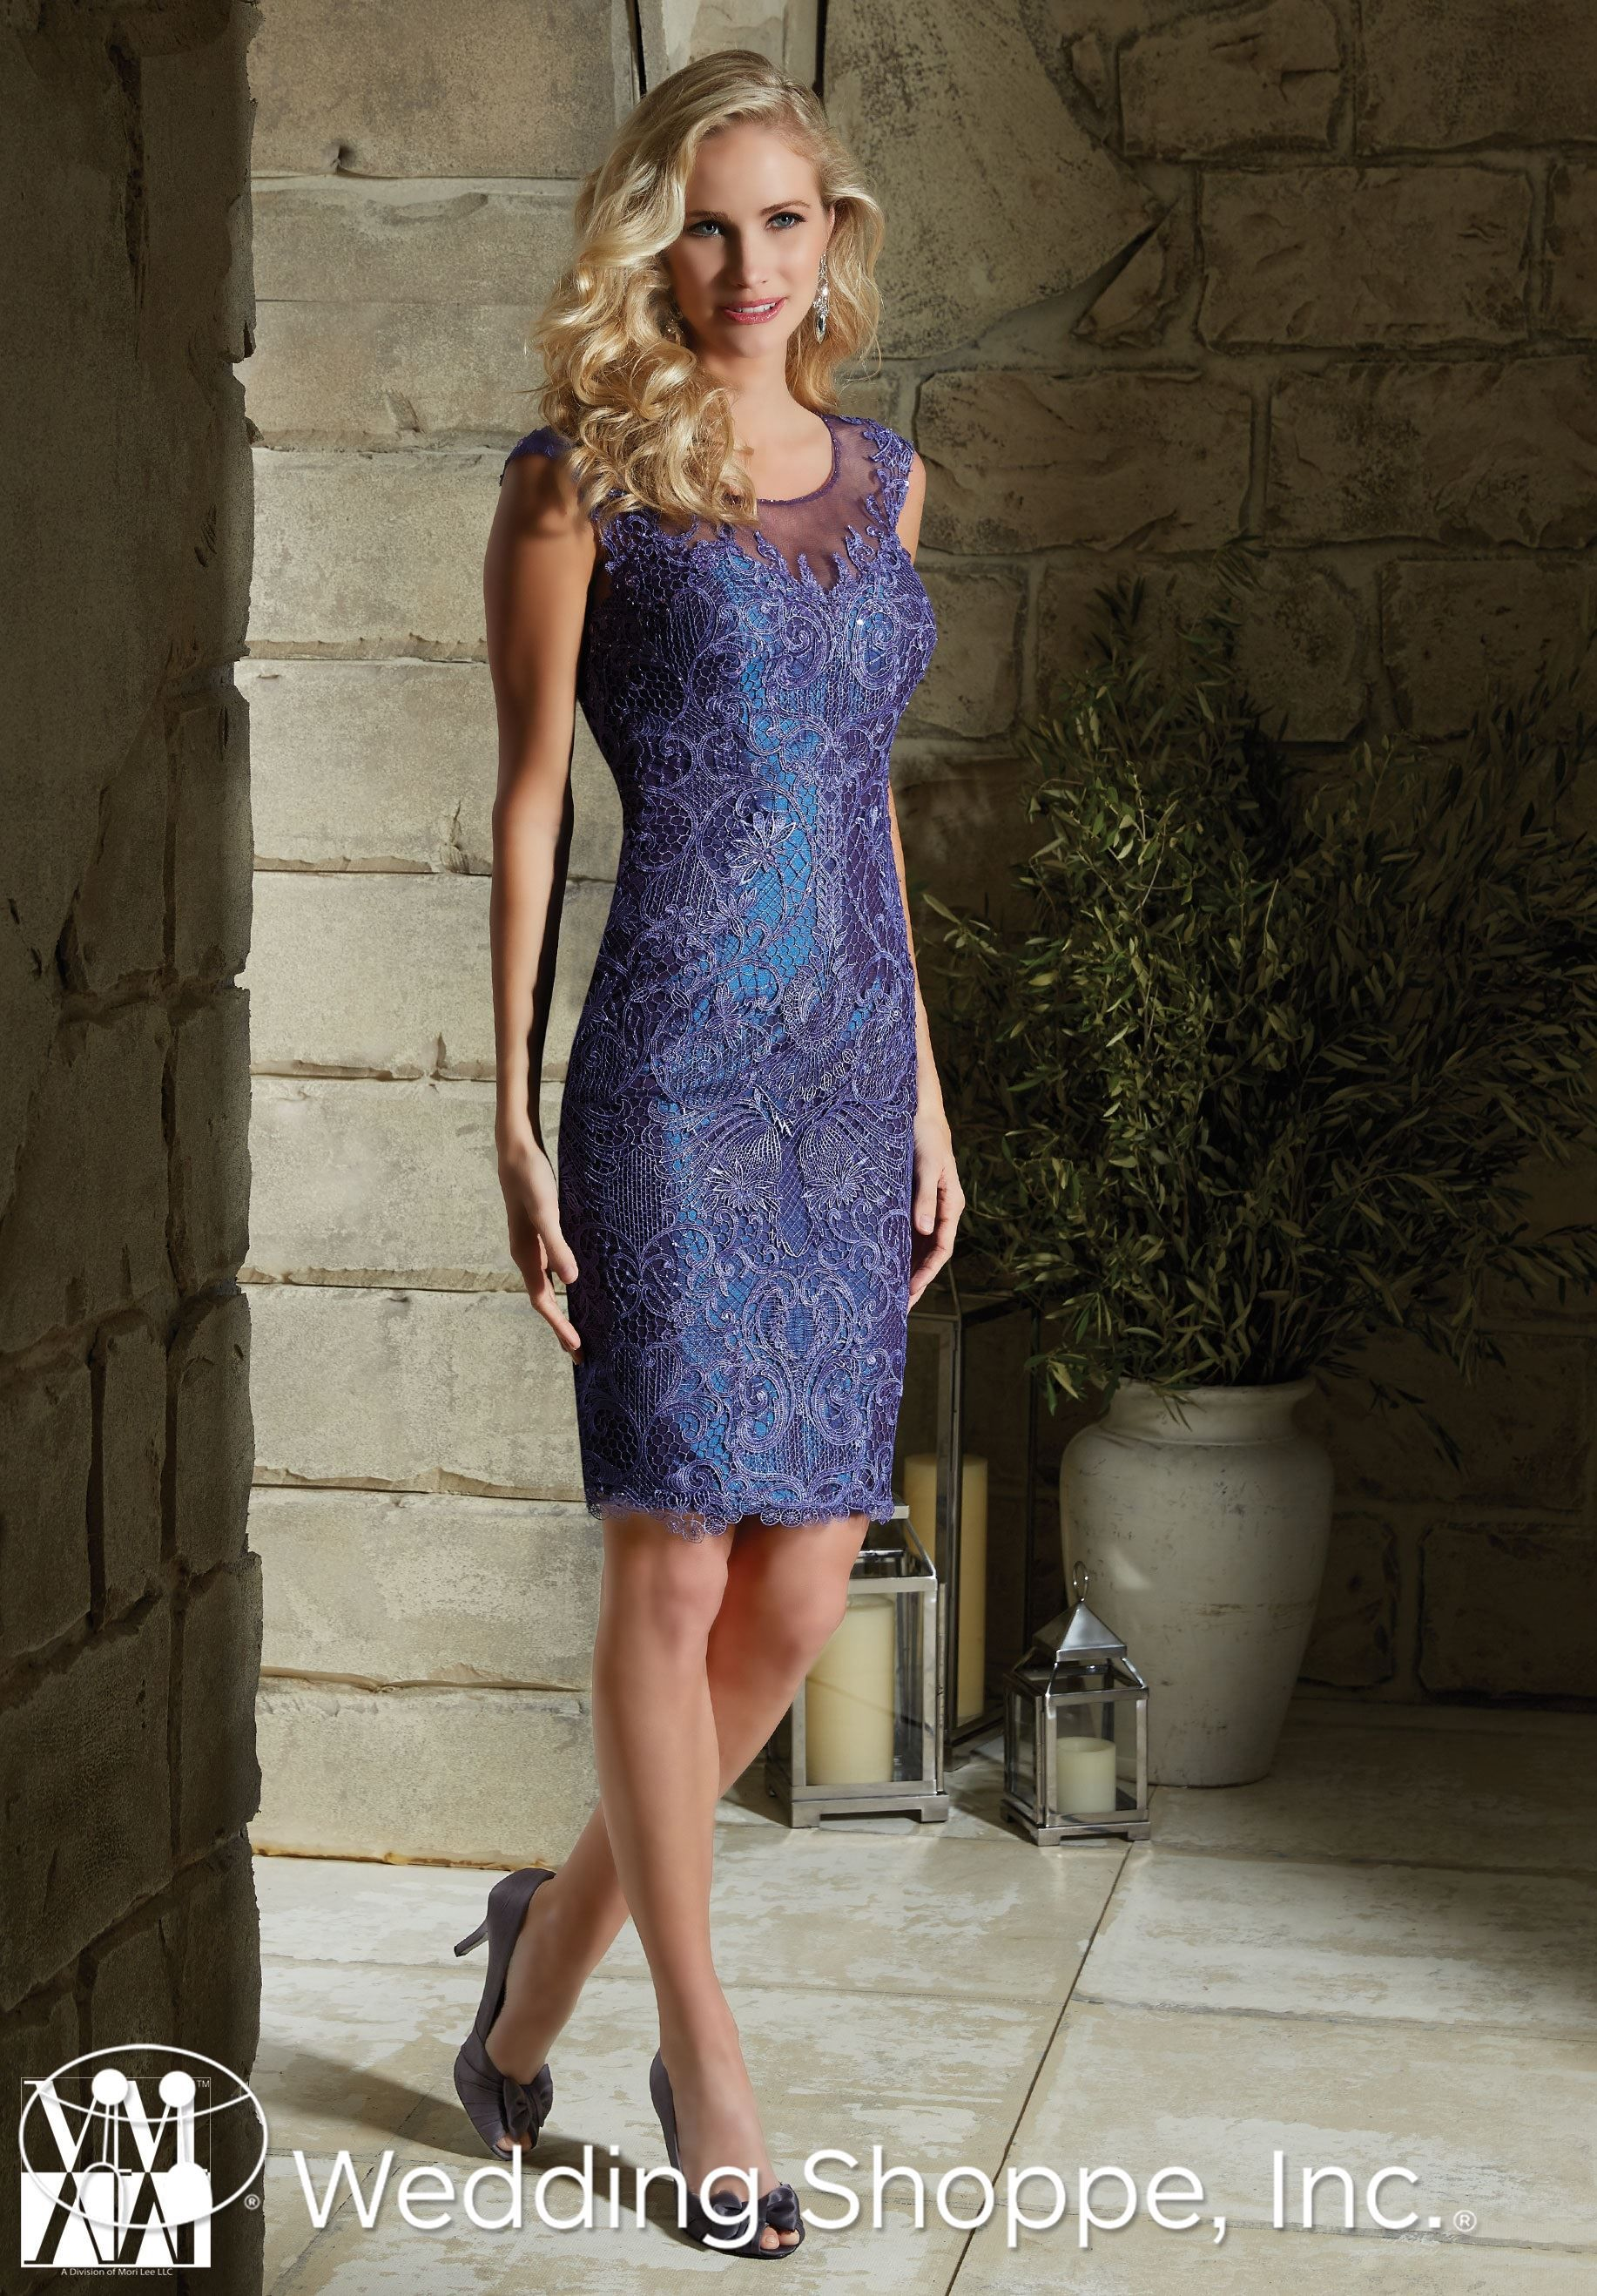 A Beautiful Blue Knee Length Dress For The Mother Of The Bride Or